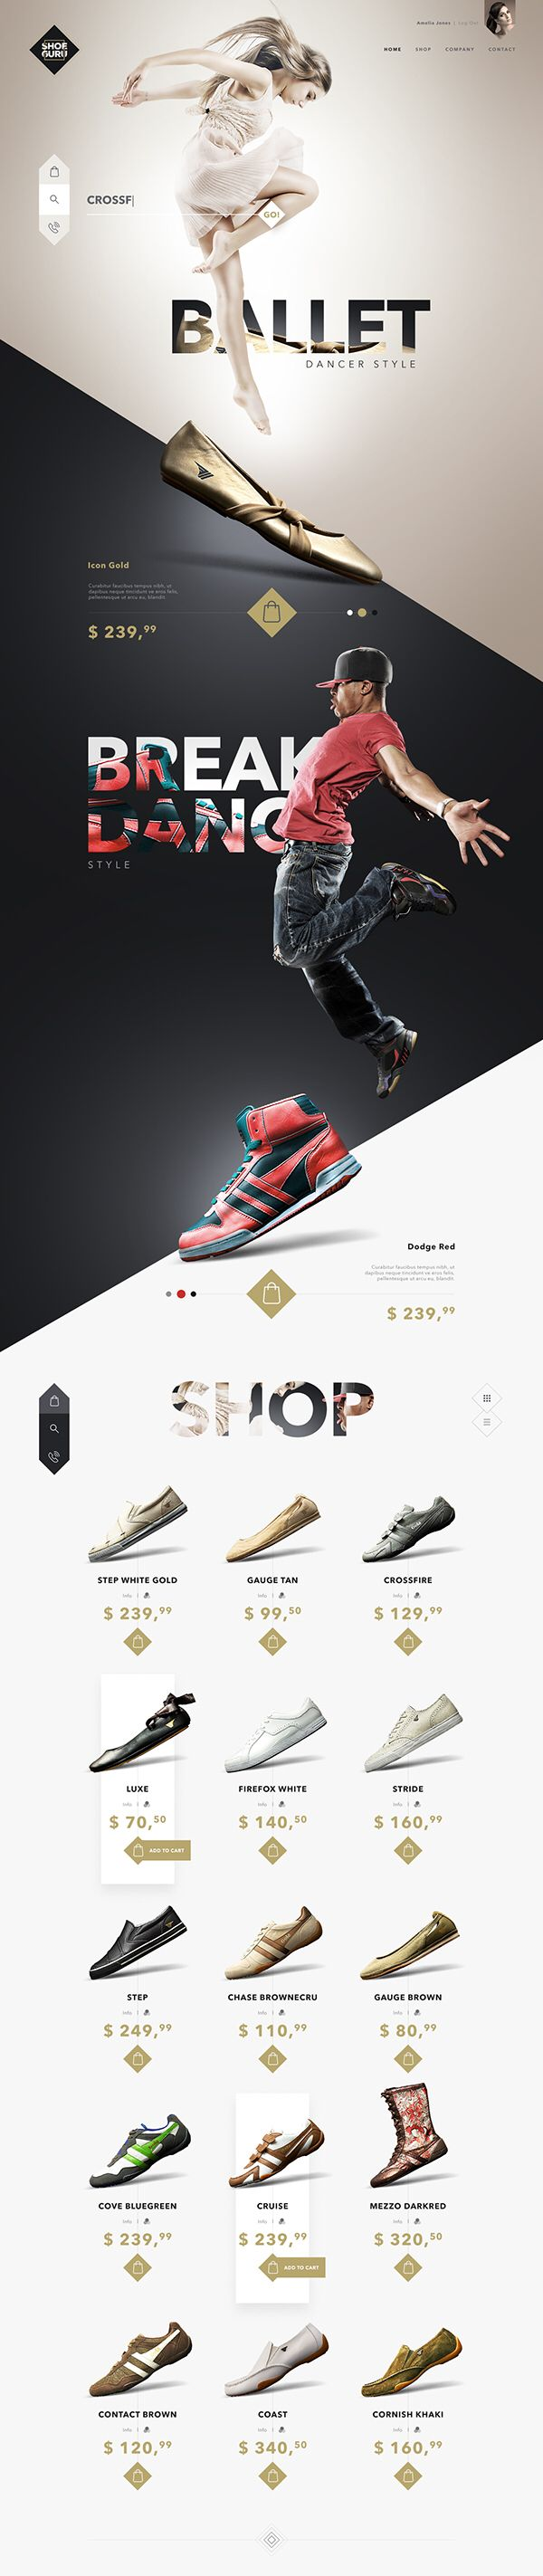 This web page is a  design concept for Fashion Store website which features a variety of shoes at various prices and for various occasions. The website looks very nice with people jumping giving a sense of action, but I think that the shoes should have their individual actions to show off their unique capabilities.